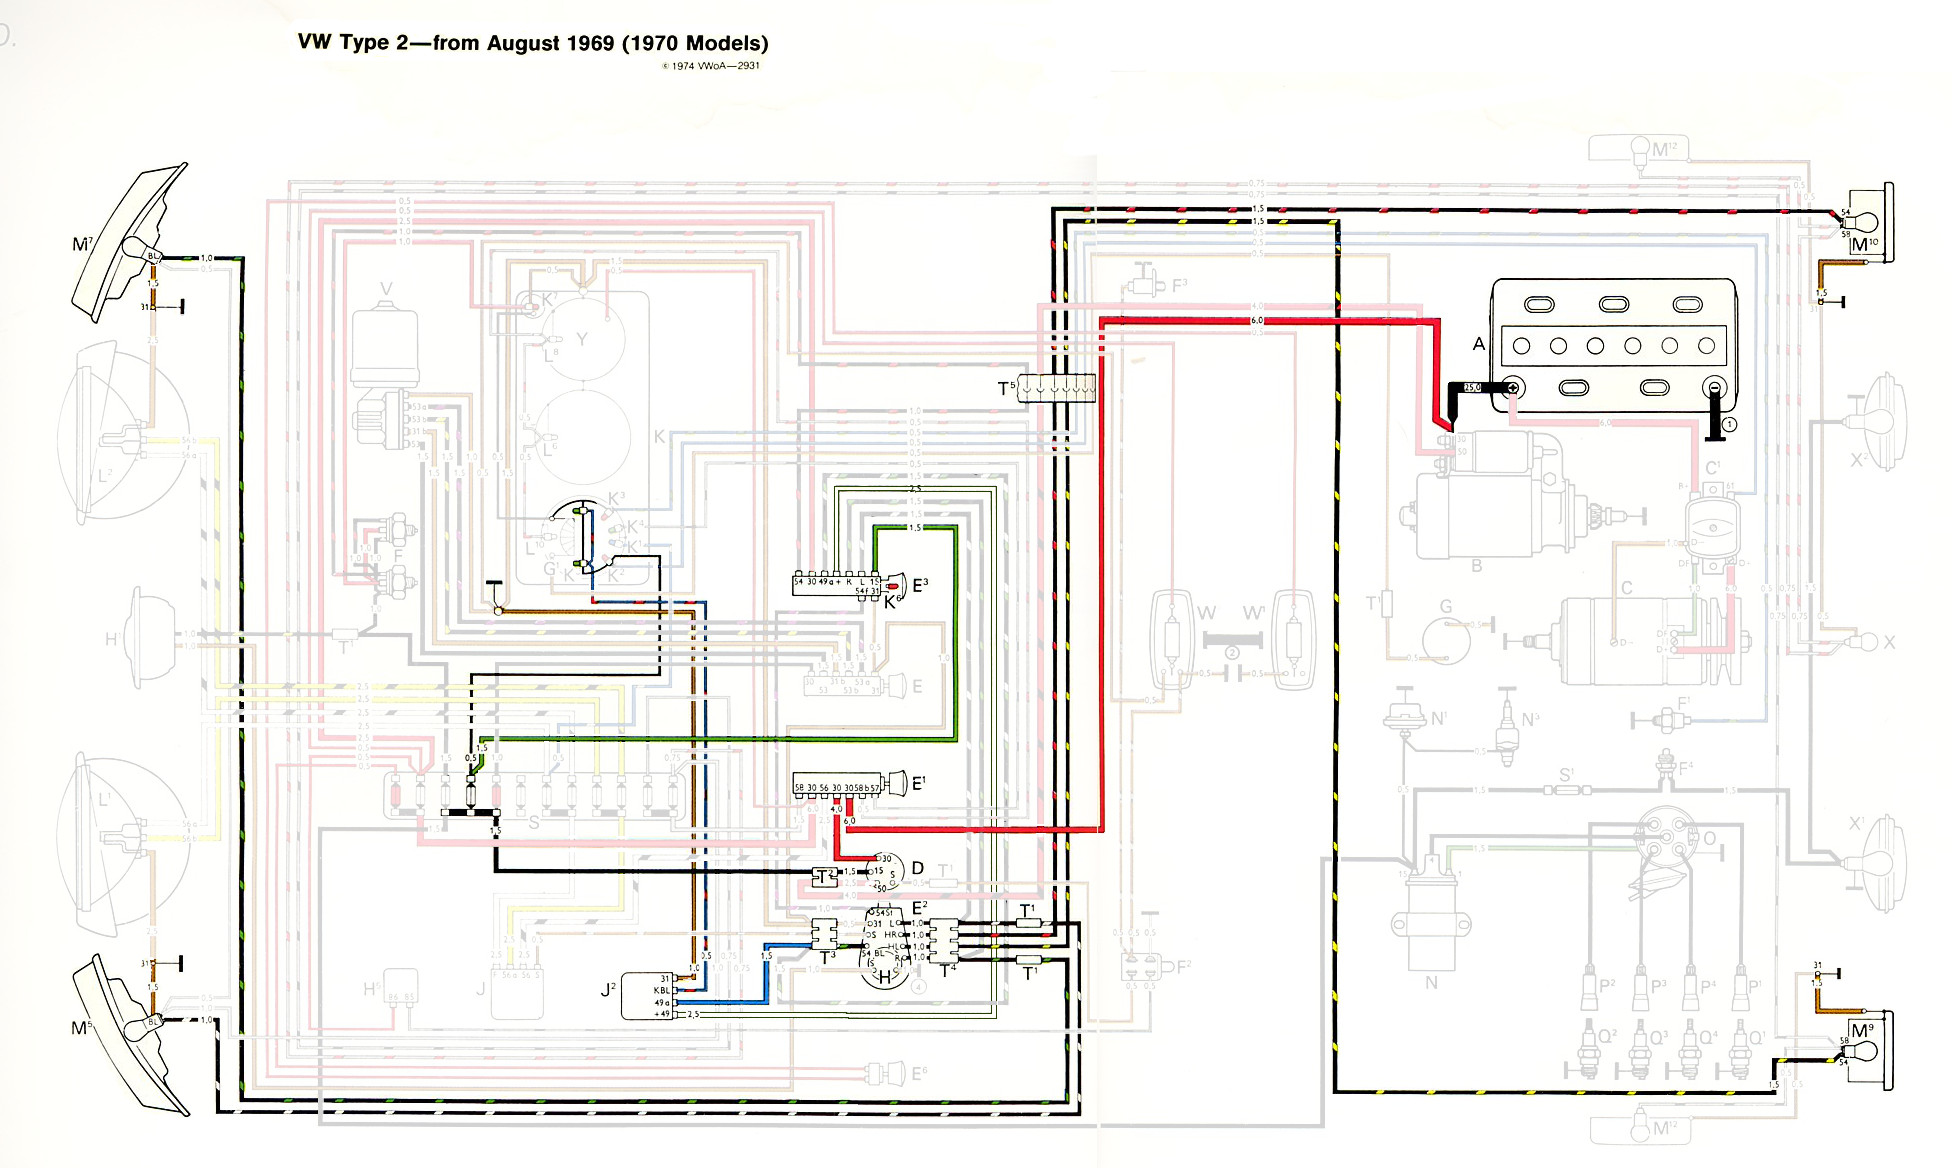 1970bus_signals 1970 vw beetle wiring diagram 1969 vw beetle turn signal wiring 1971 vw bus wiring diagram at cos-gaming.co